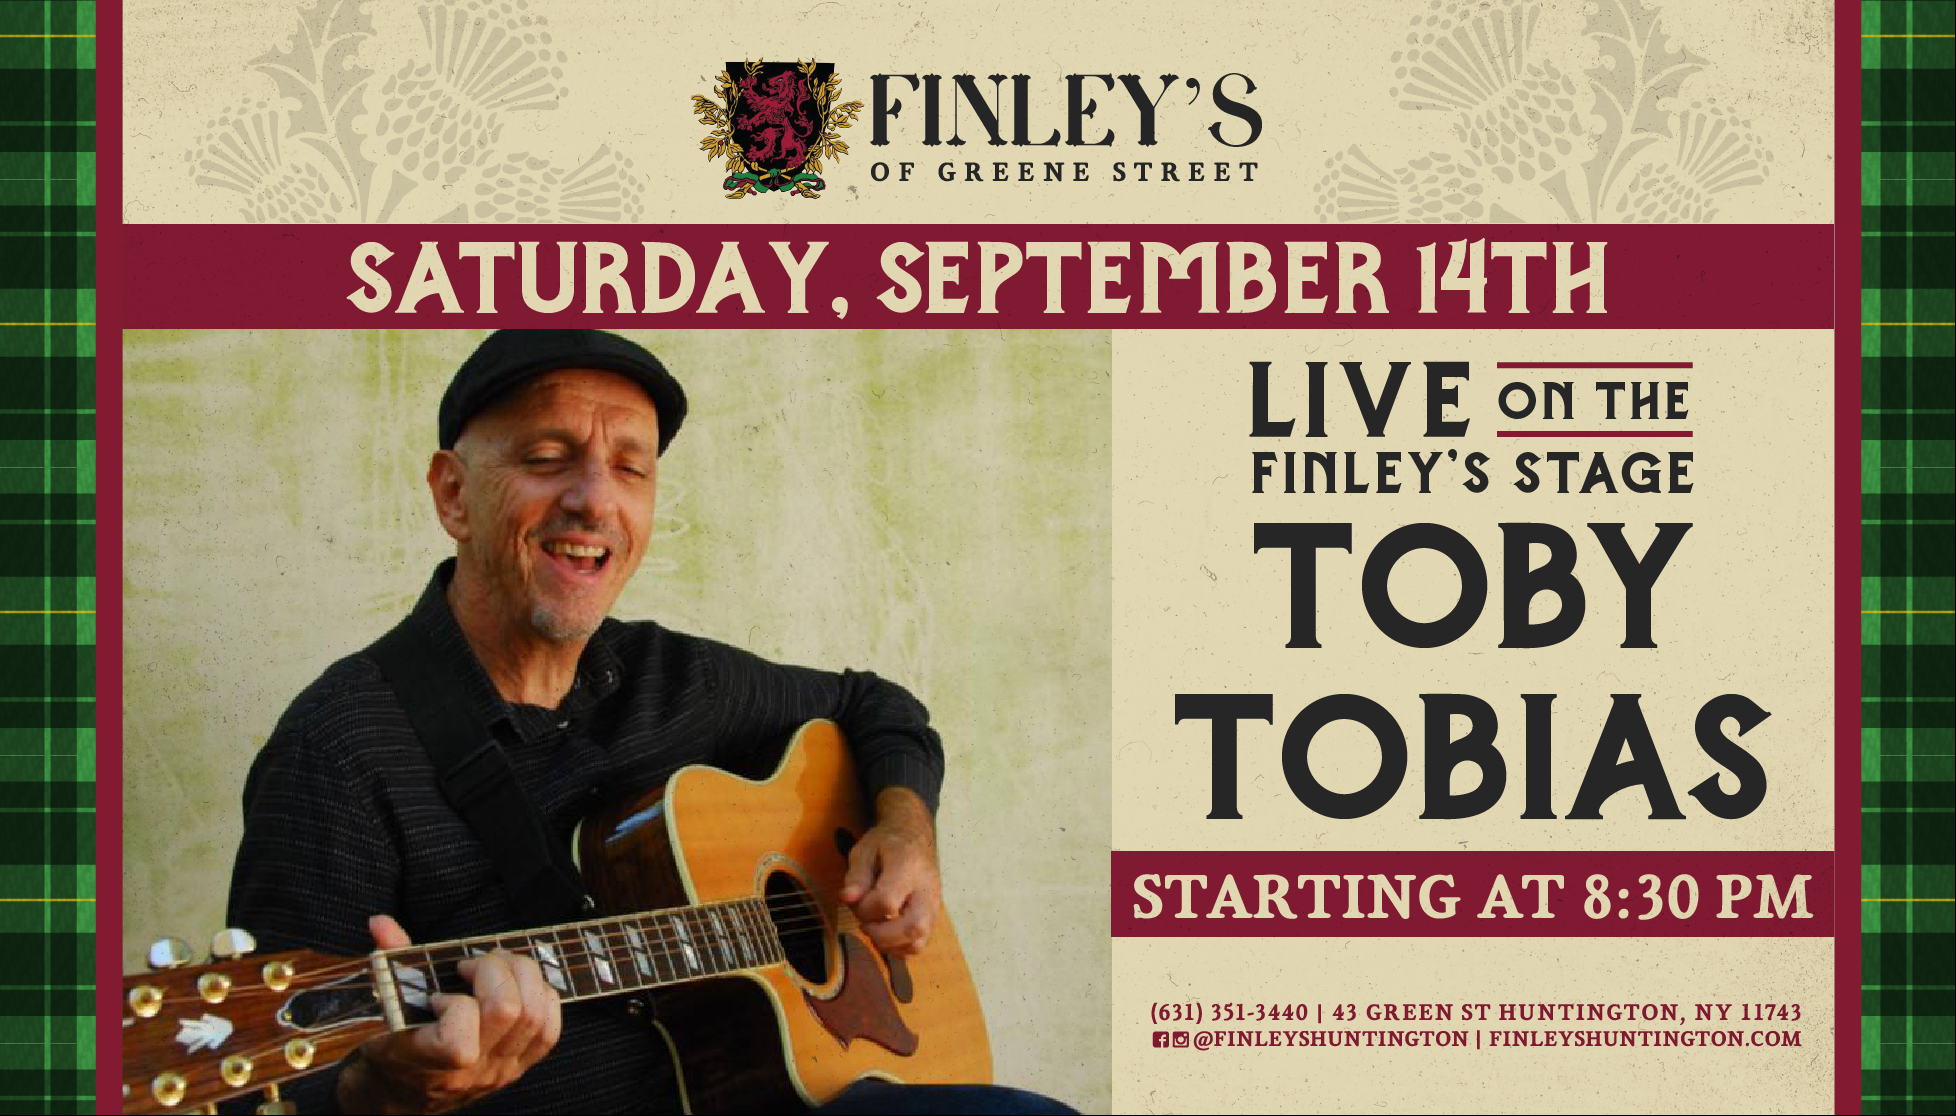 Flyer for live music with Toby Tobias on Saturday, September 14th at 8:30pm.